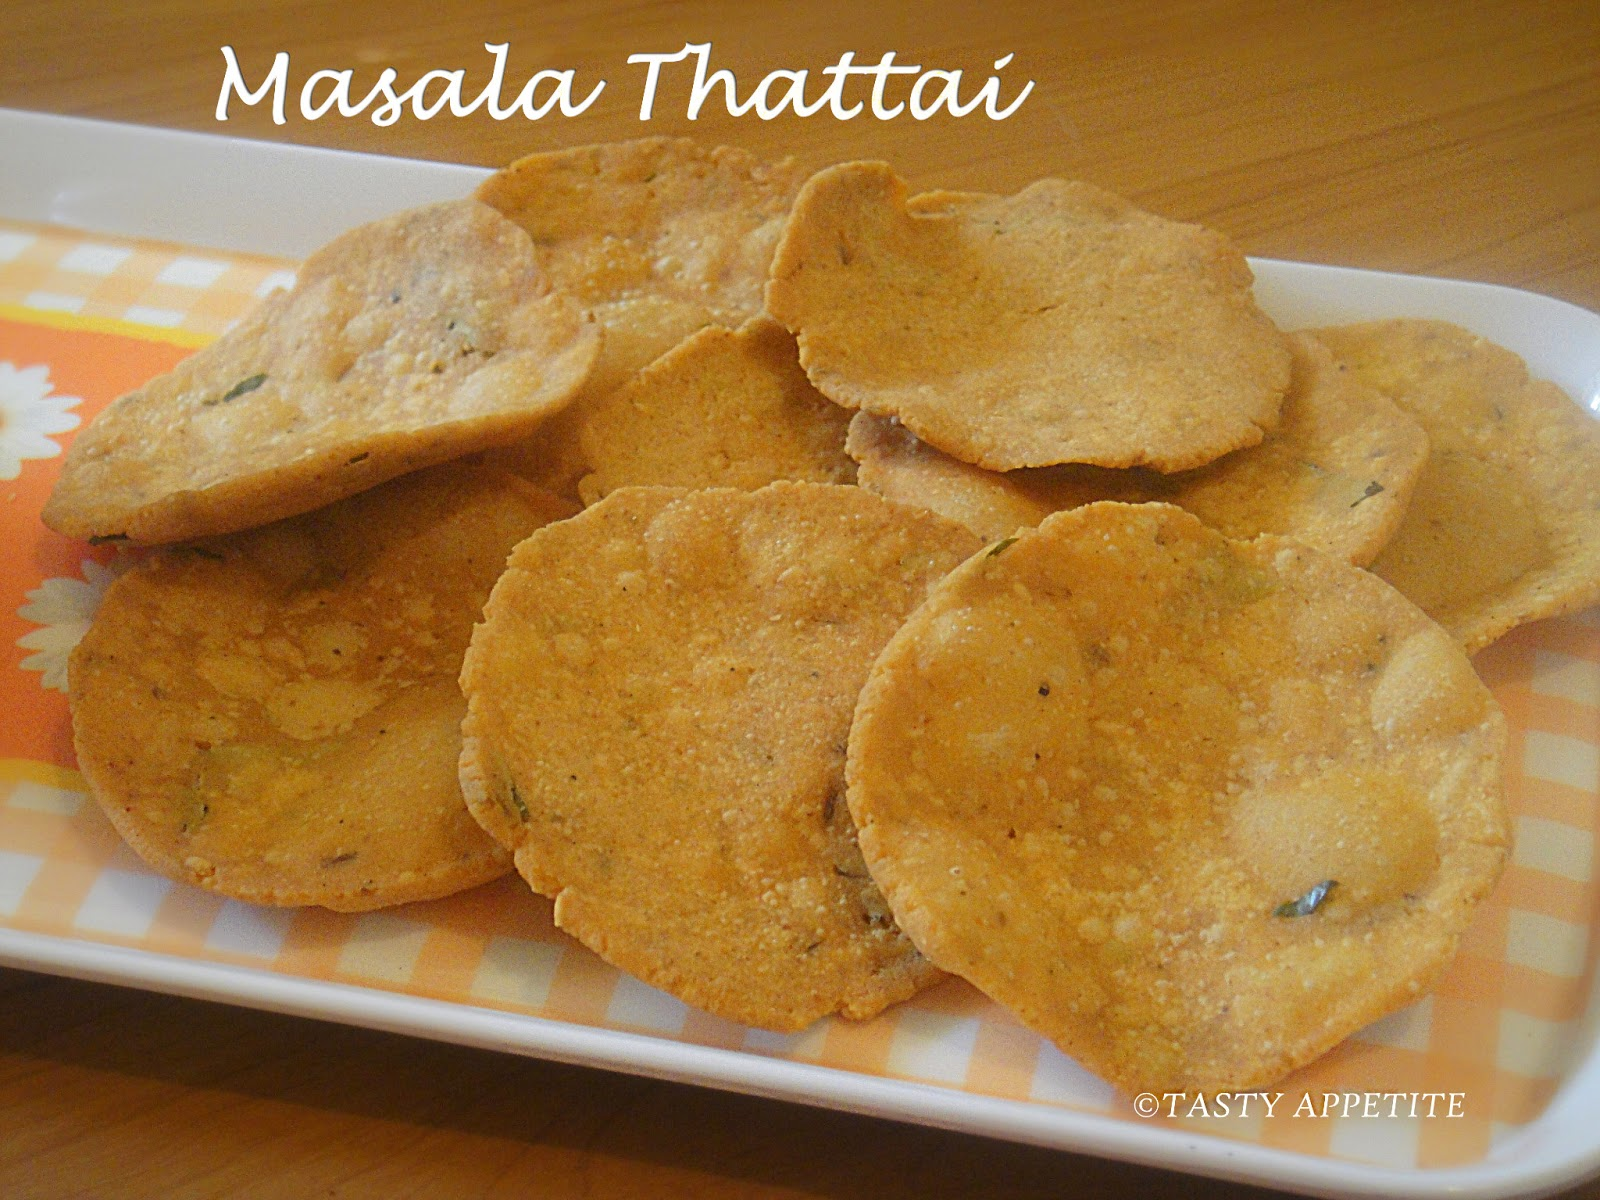 Try This Tasty Indian Recipe For Masala Thattai And Share Your Comments